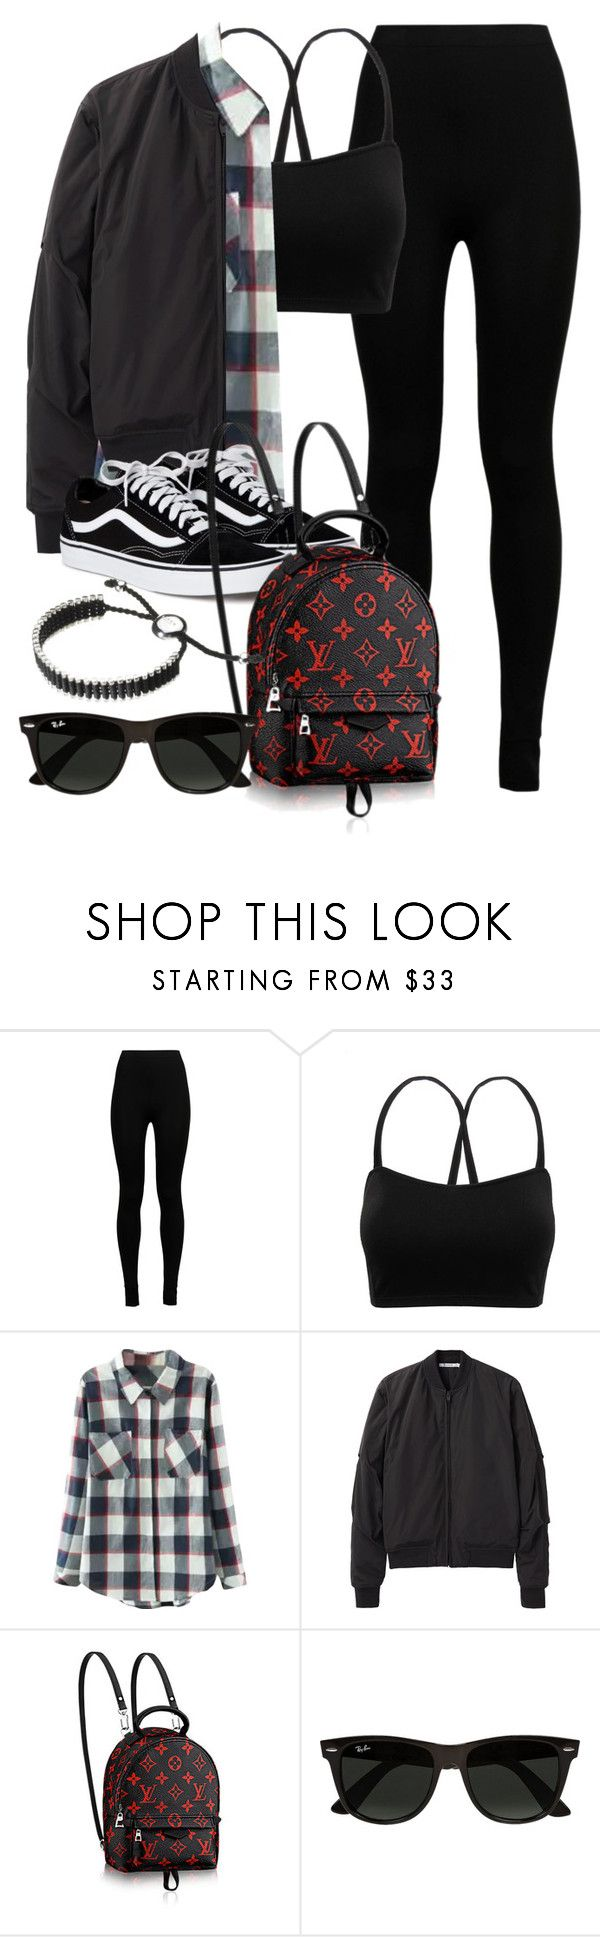 """""""Sin título #11988"""" by vany-alvarado ❤ liked on Polyvore featuring Wolford, Relaxfeel, T By Alexander Wang, Ray-Ban and Links of London"""